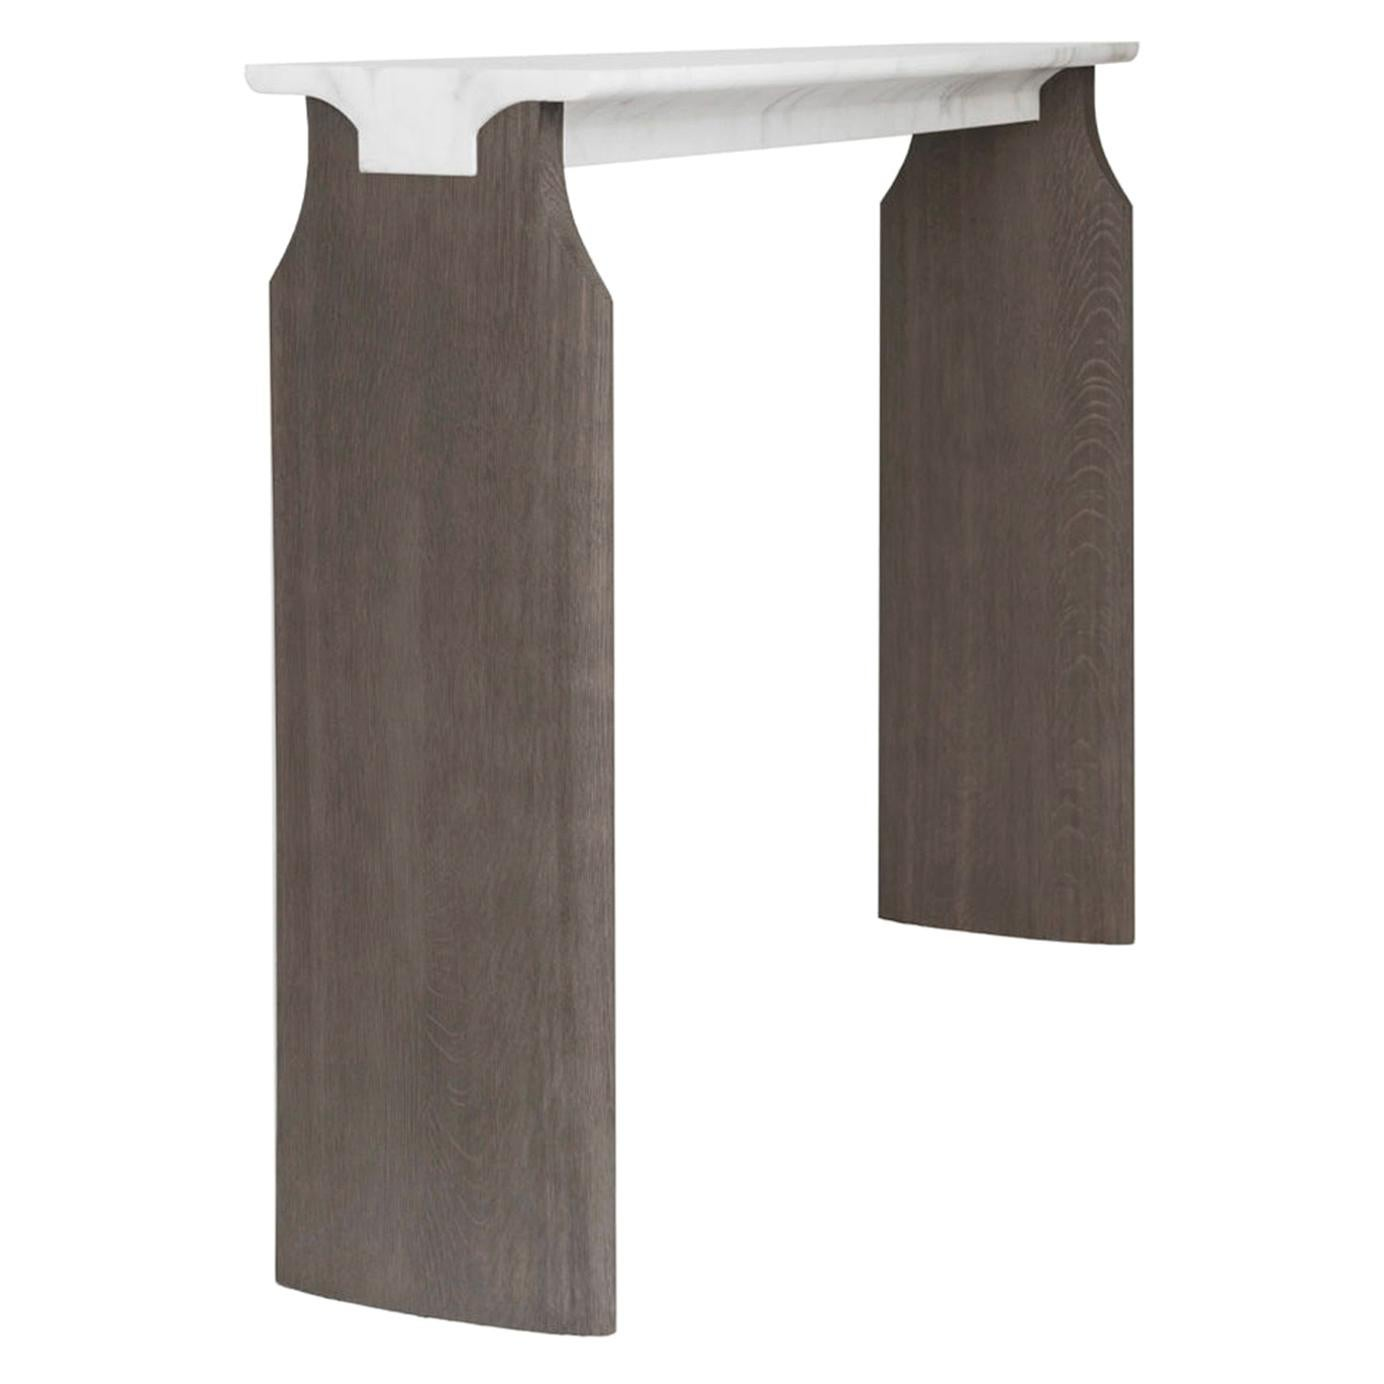 Atelier Linné Jay Console in Calacata Carved Marble and Brushed Tinted Oak